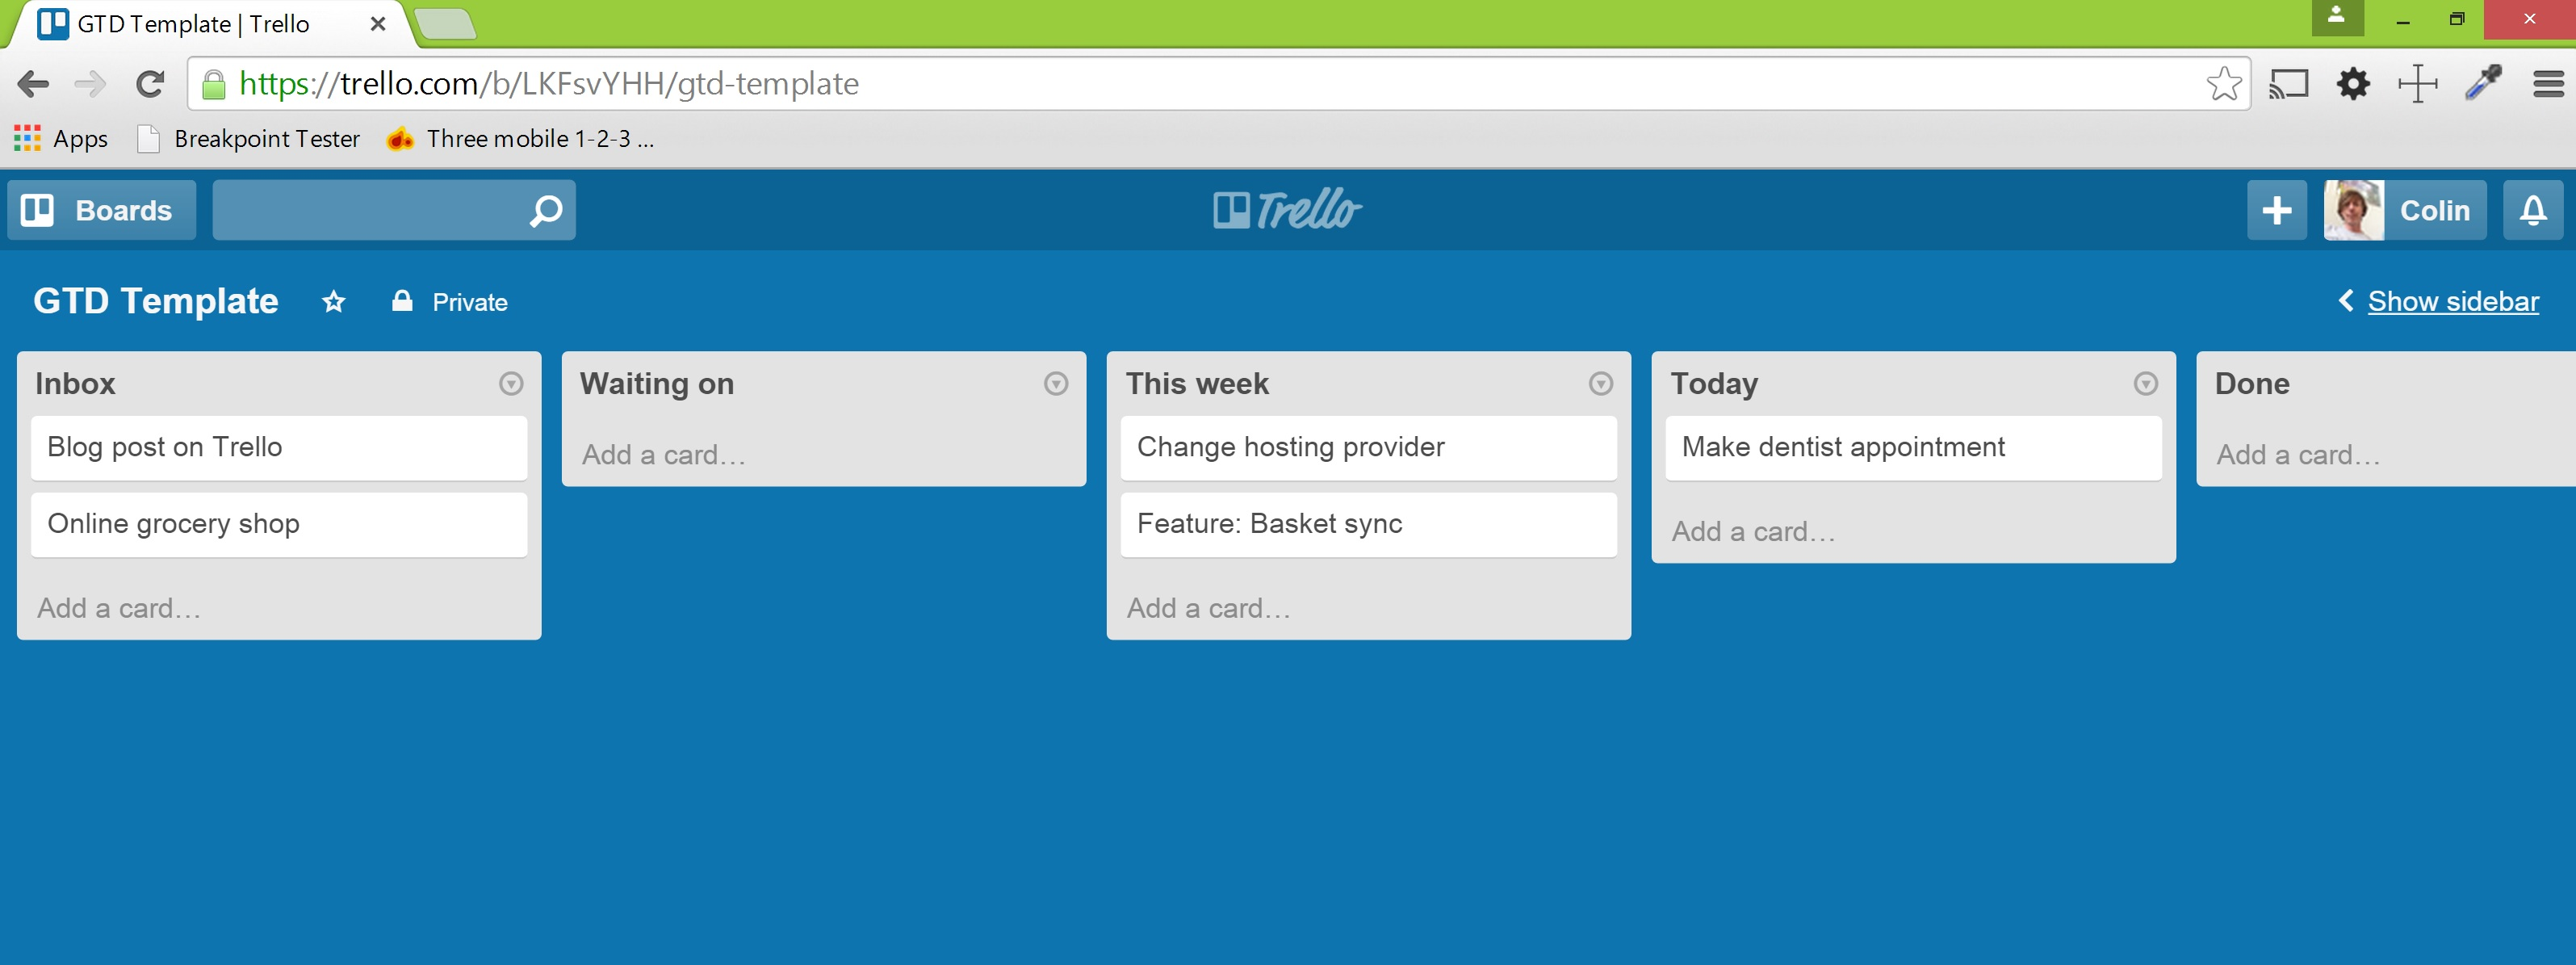 Trello board with a GTD workflow